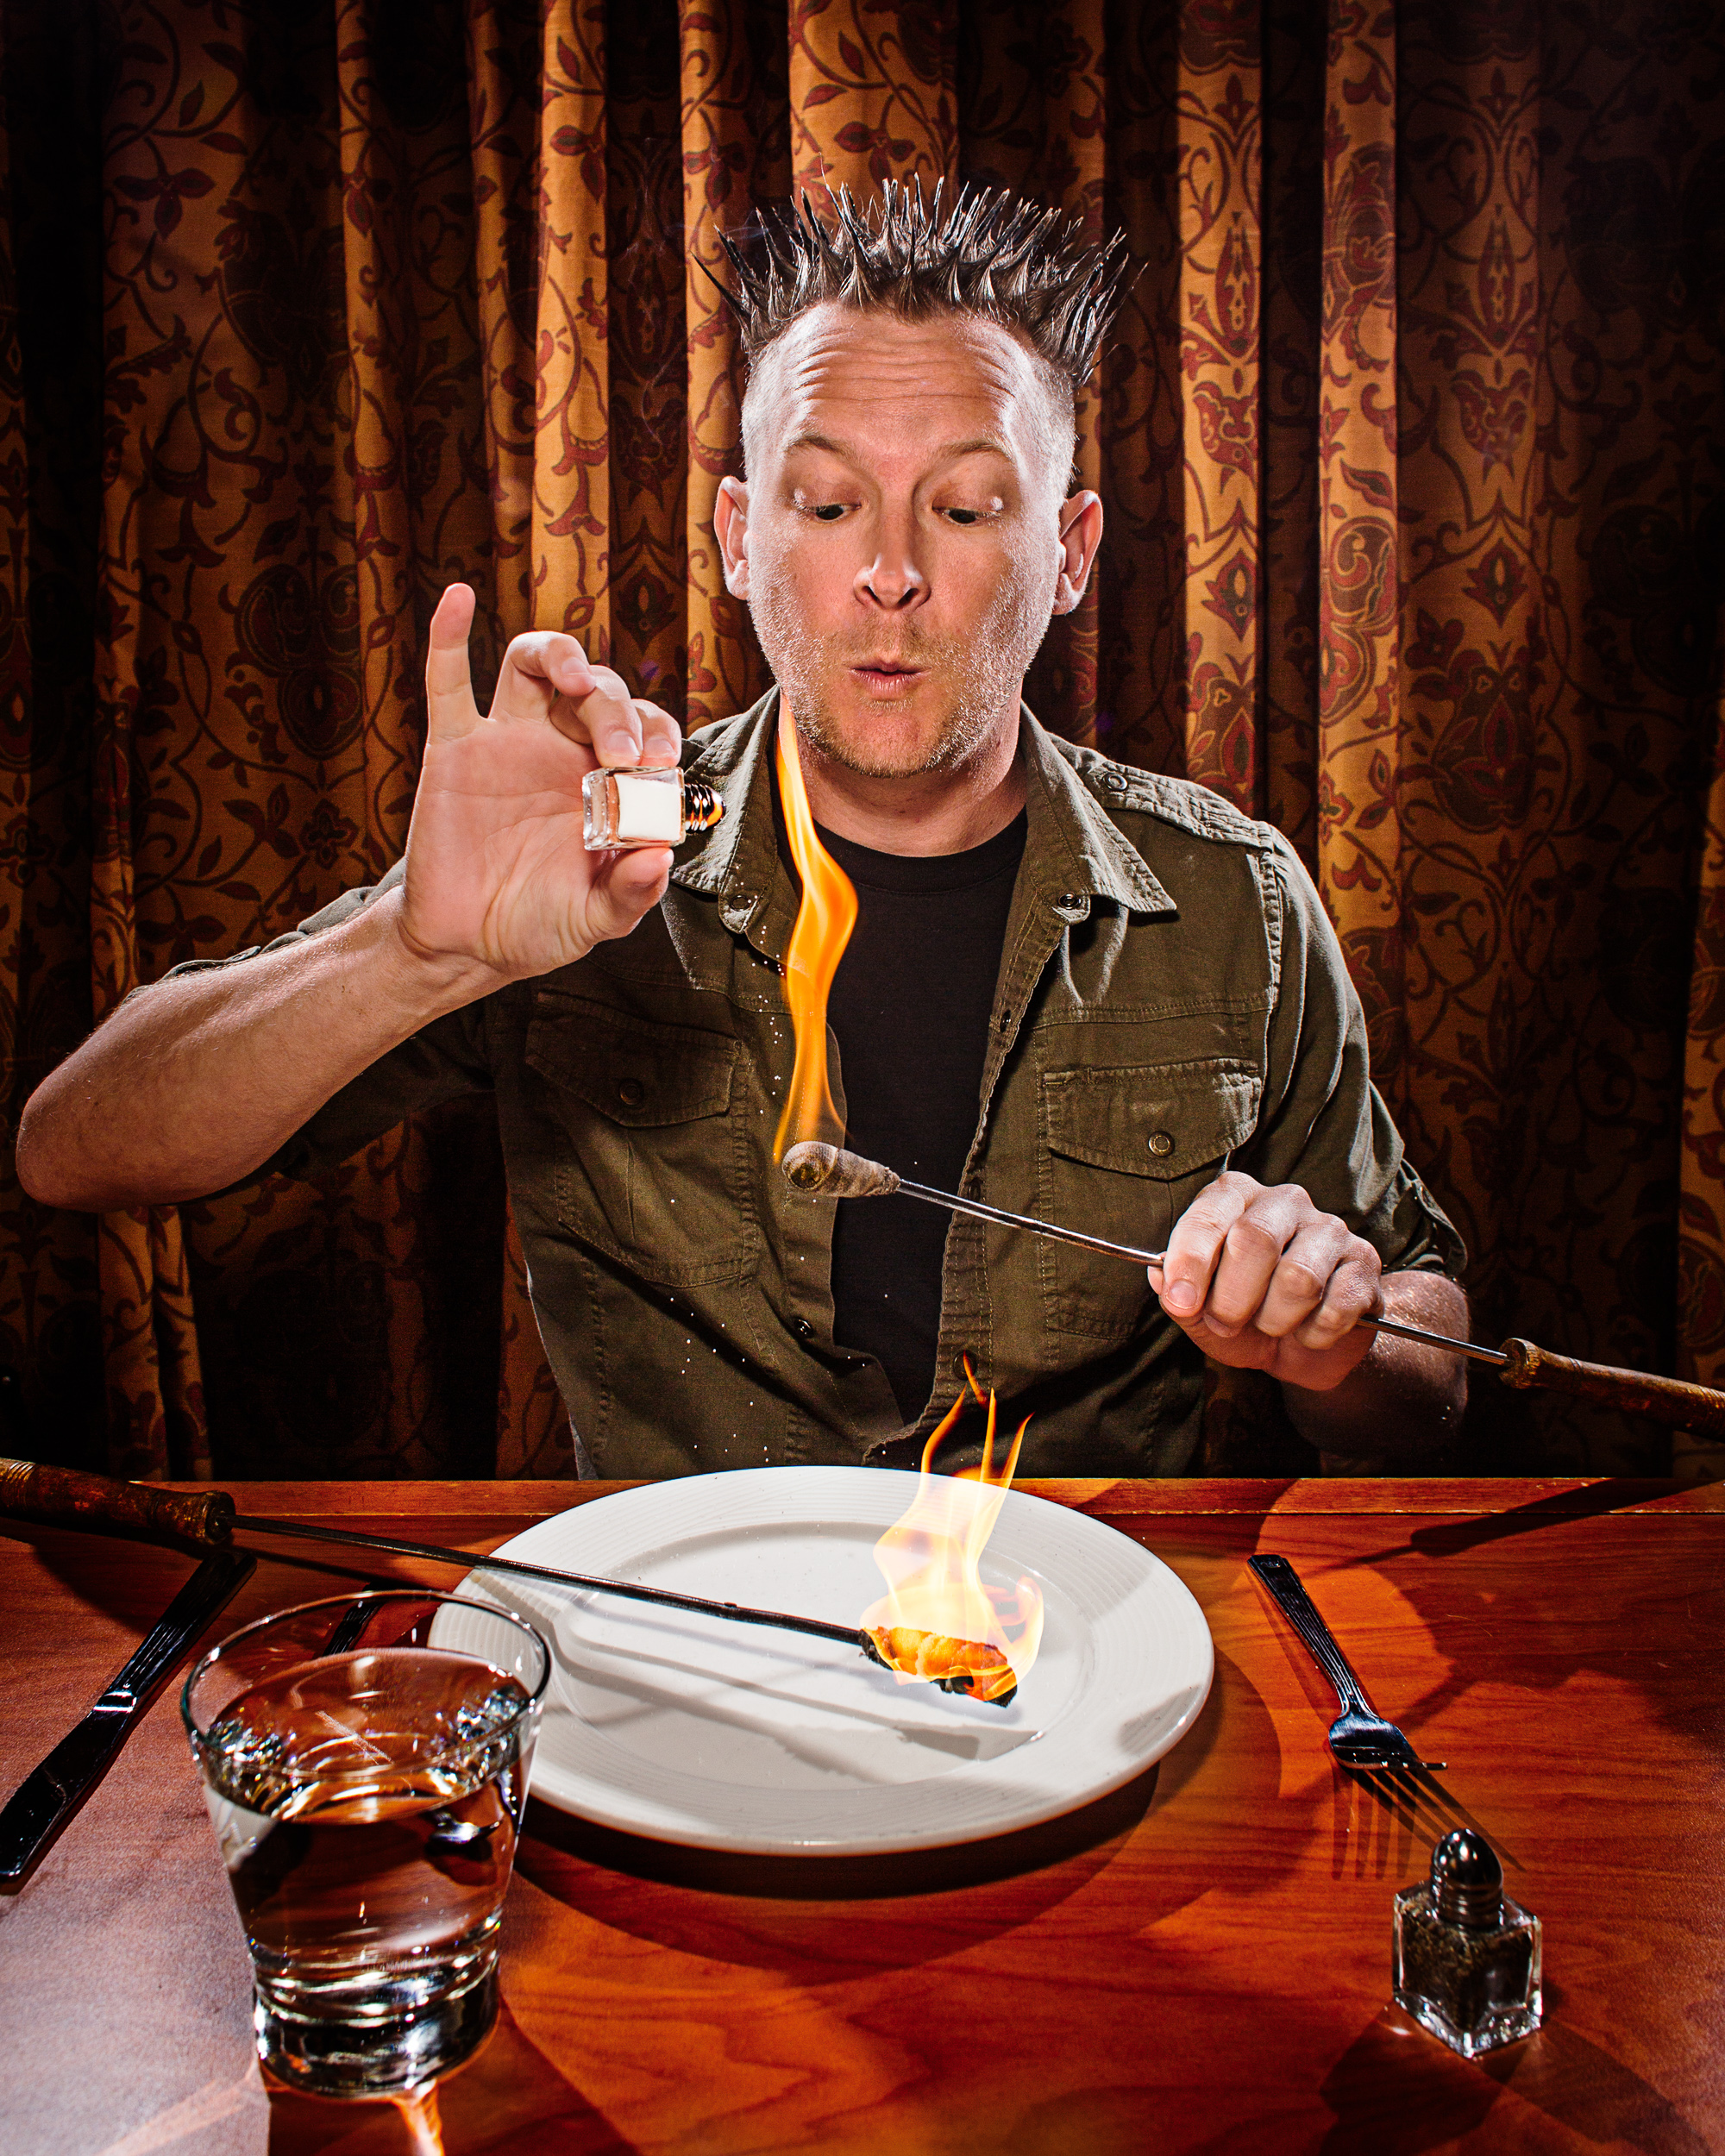 Brian Brushwood - Fire Eater